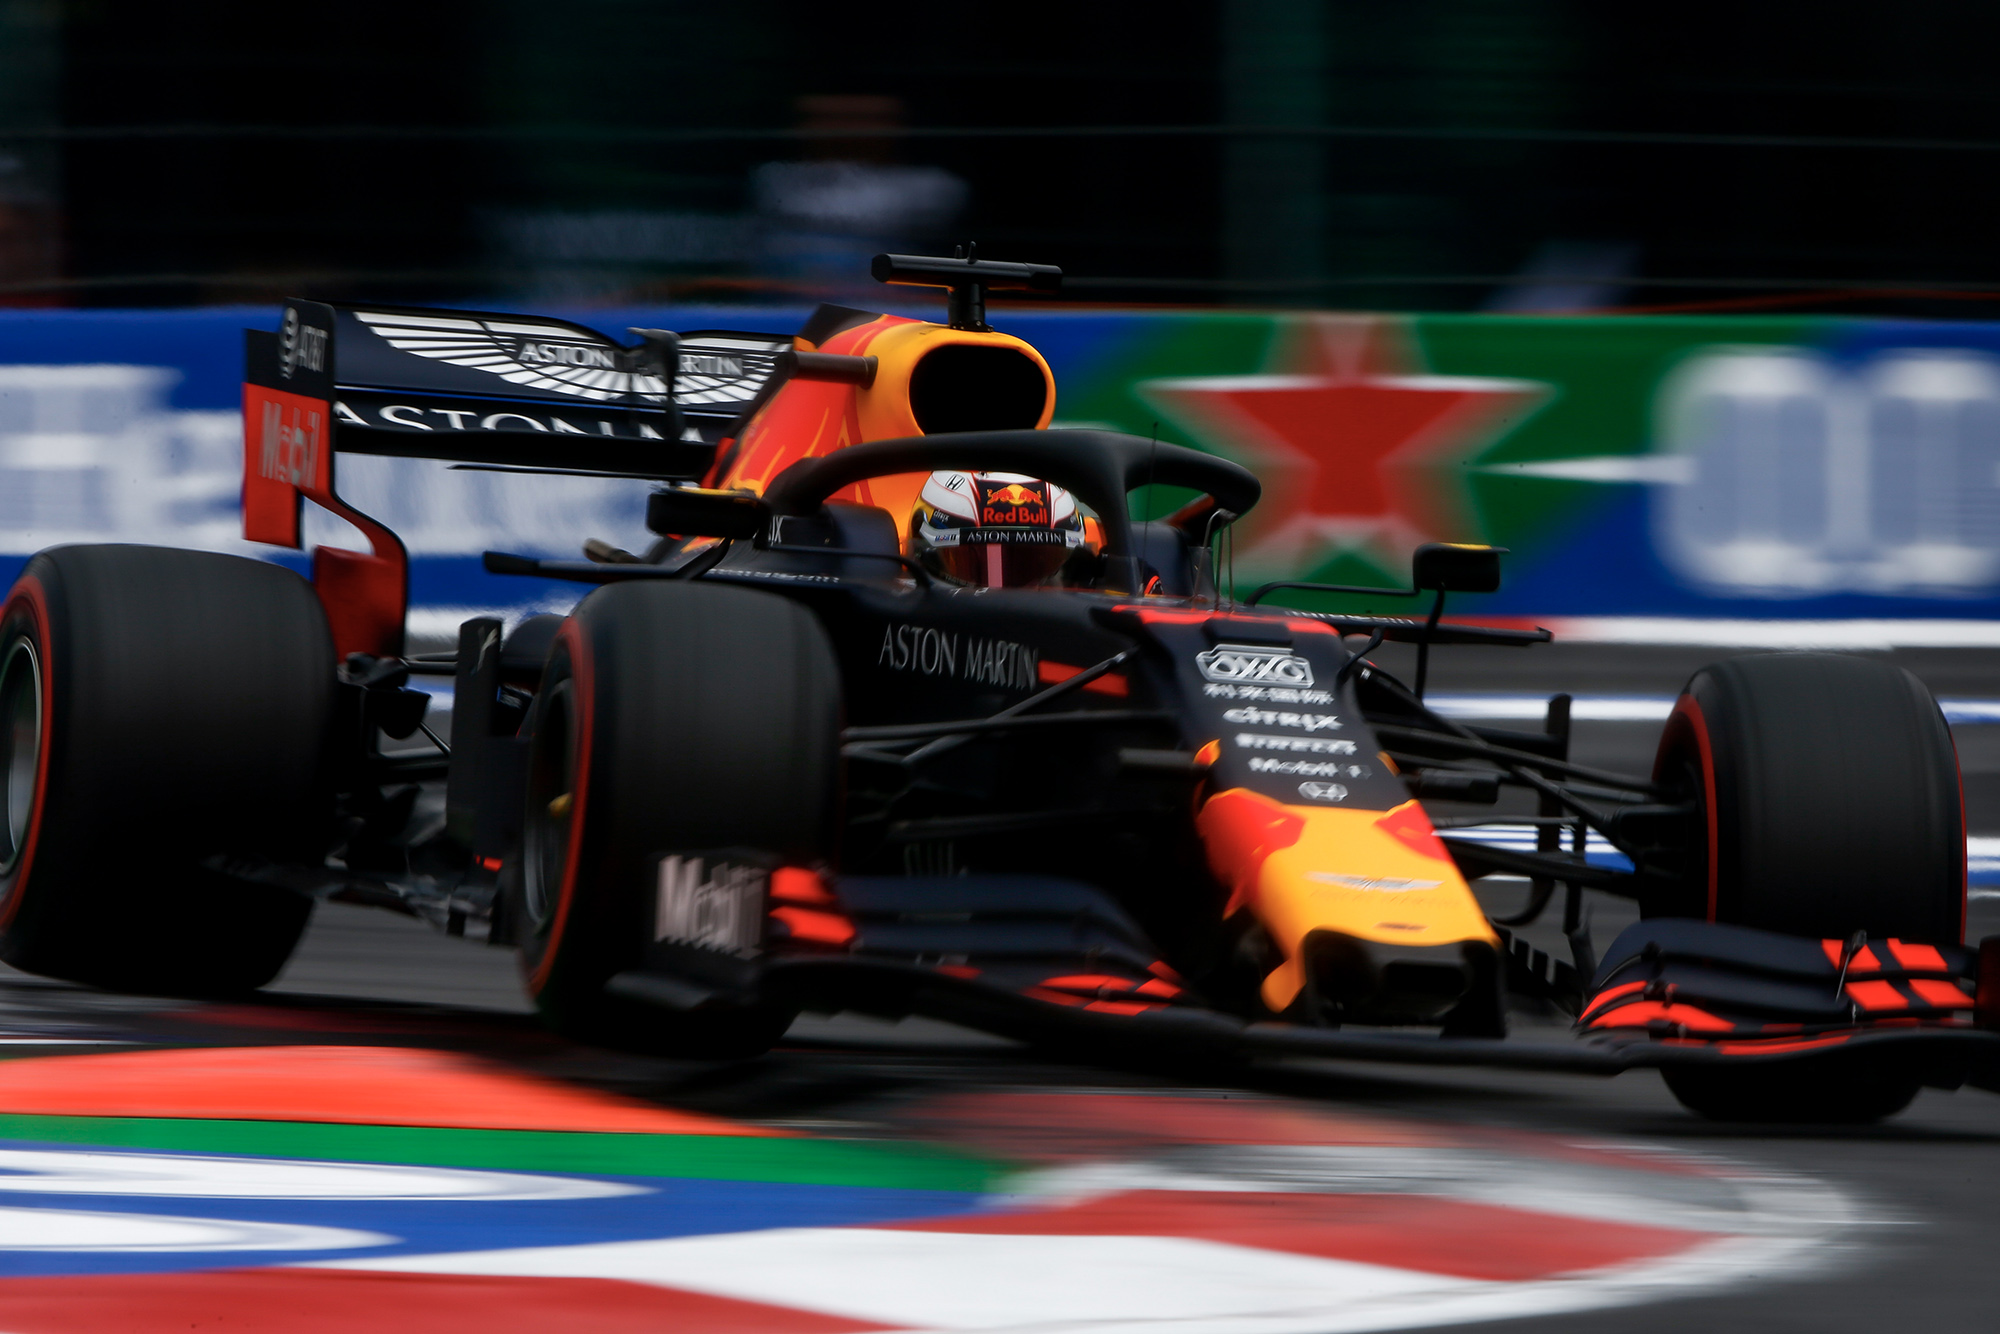 Max Verstappen during qualifying for the 2019 Mexican Grand Prix